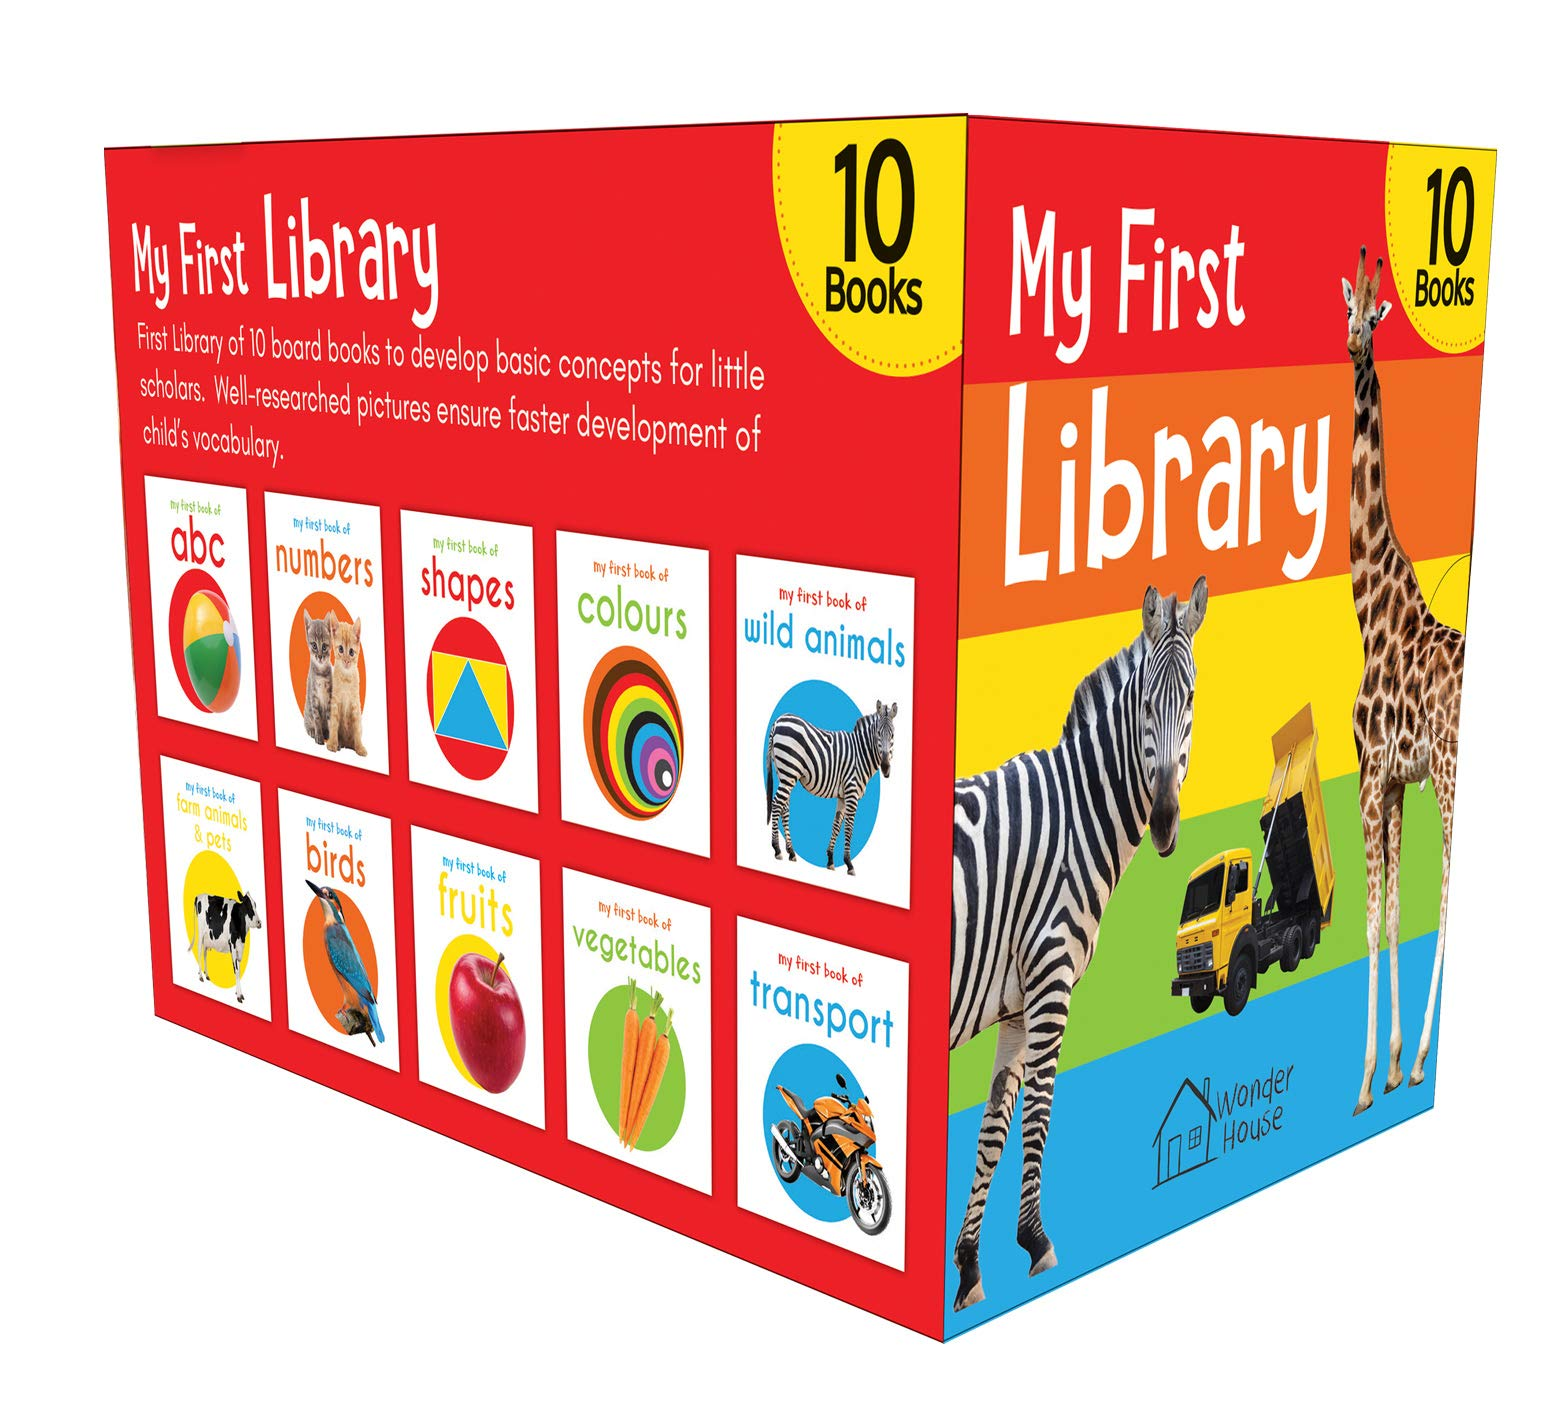 My First Library: A Collection of Books for Kids Learning